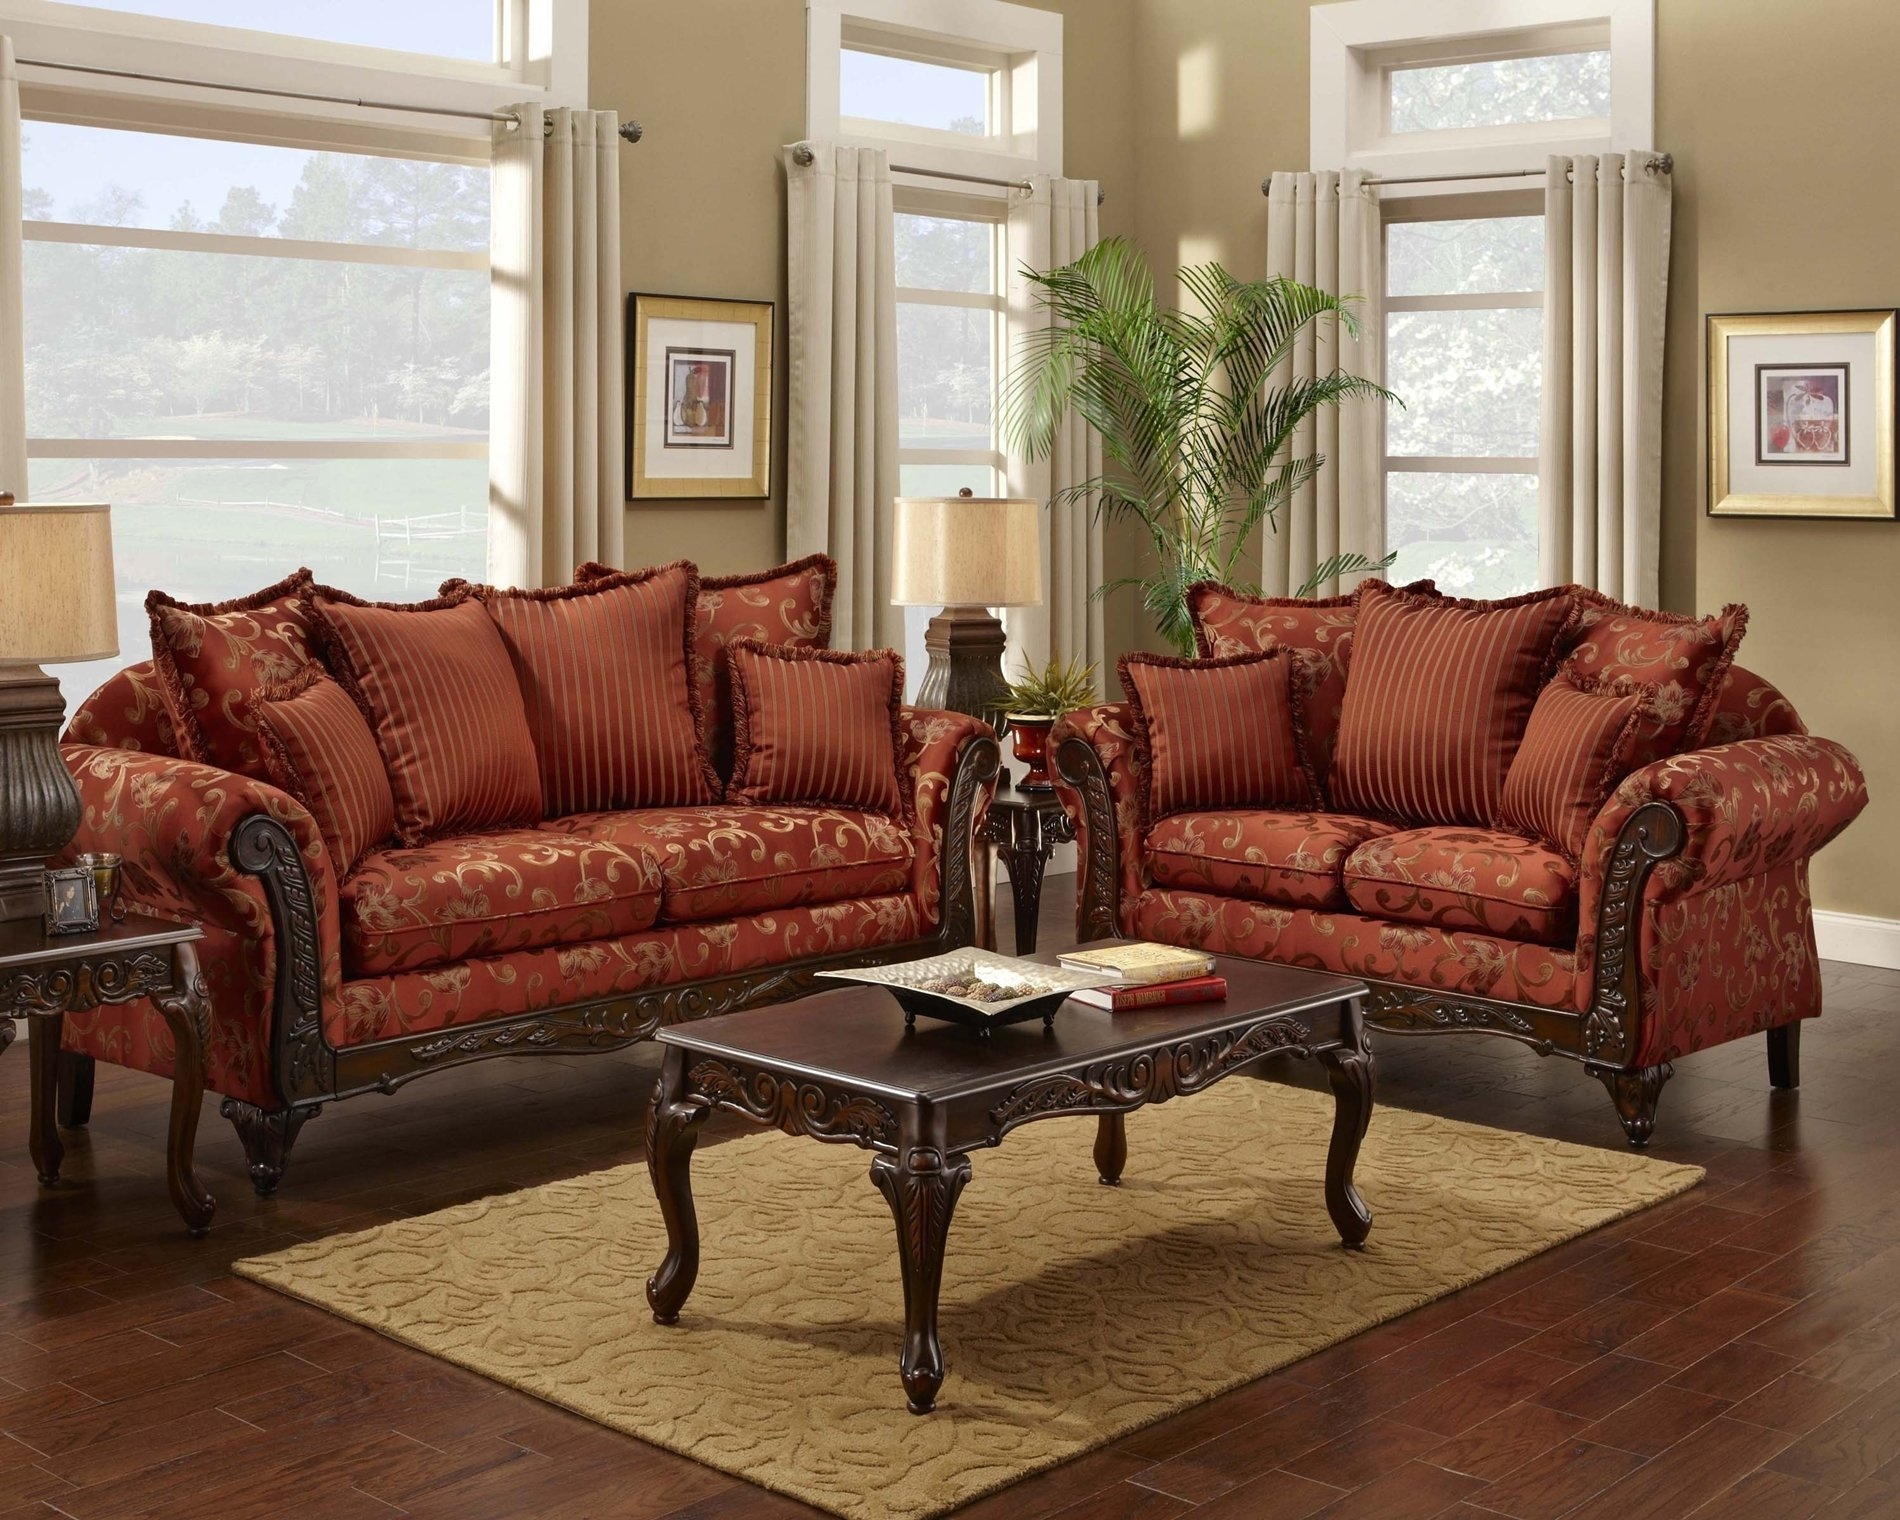 15 Traditional Sofas For Sale Sofa Ideas